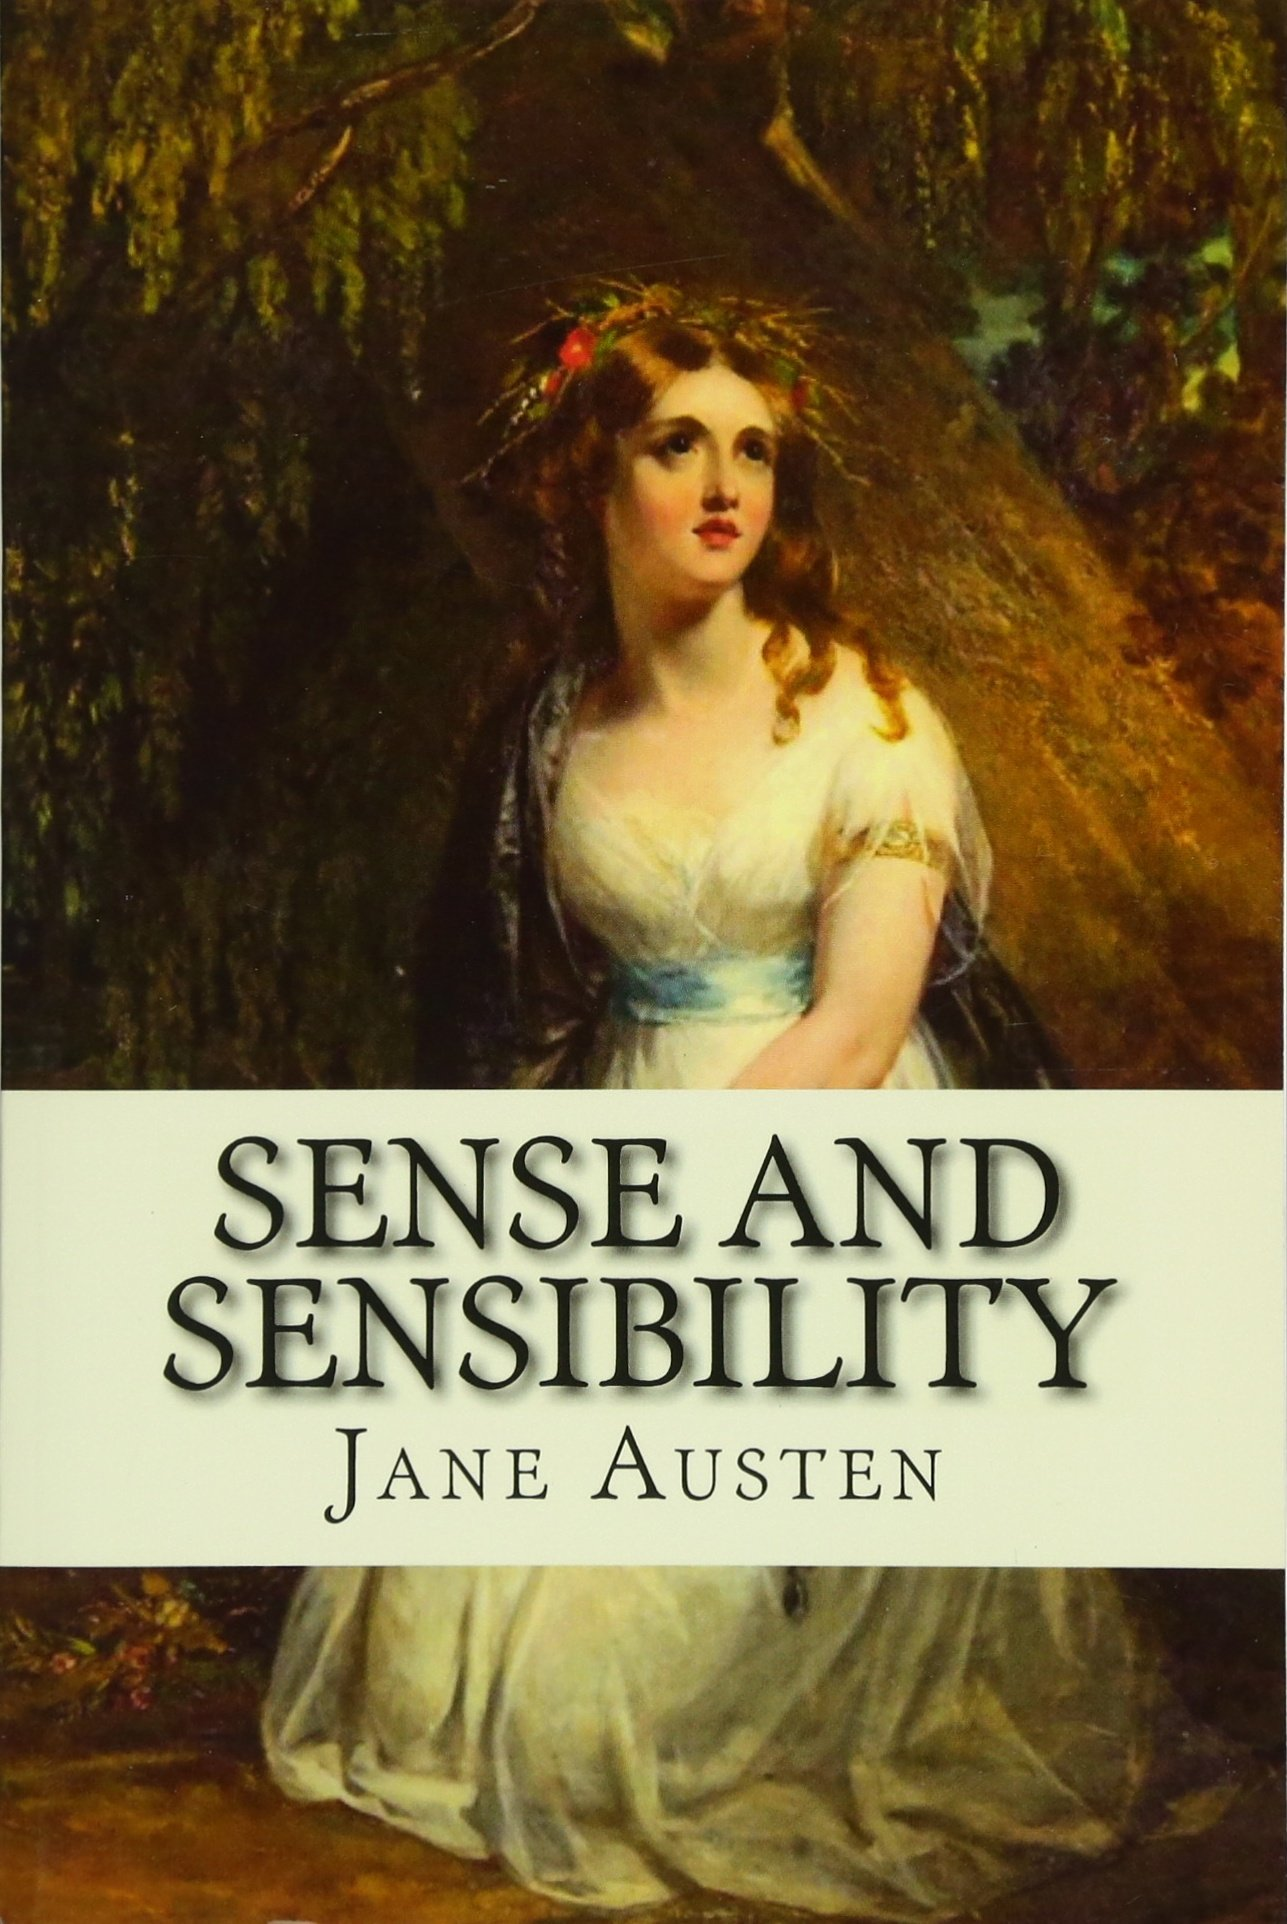 Jane Austen books 5